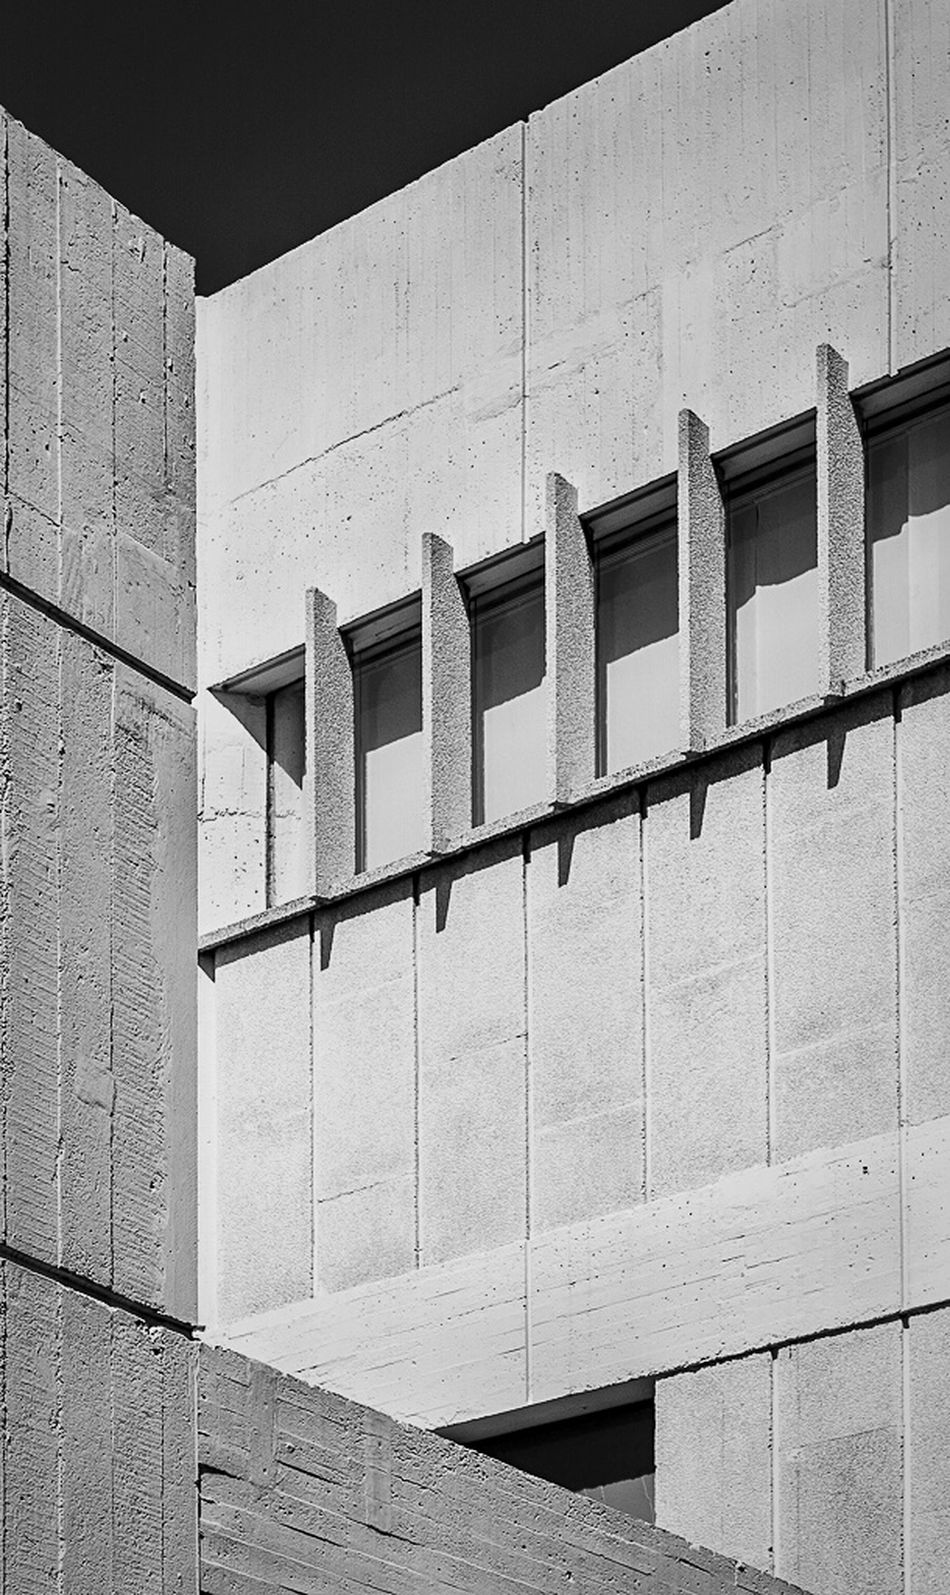 Shades Of Grey Architecture_bw Architecture Volumes Open Edit Monochrome_life Monochrome Blackandwhite Textures And Surfaces